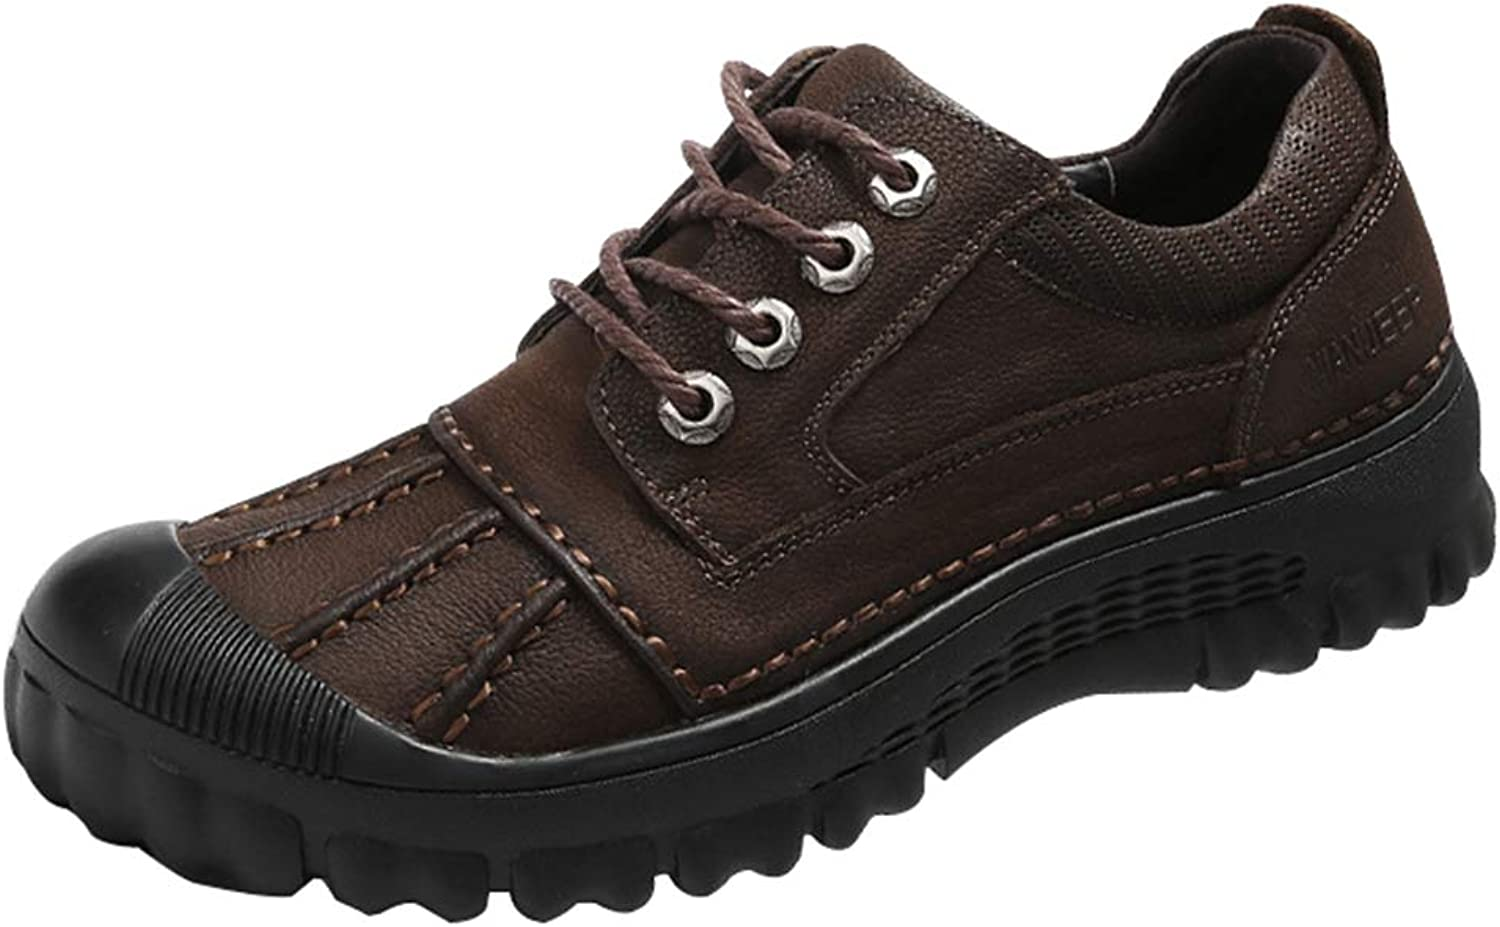 Men's outdoor hiking shoes casual leather trekking shoes